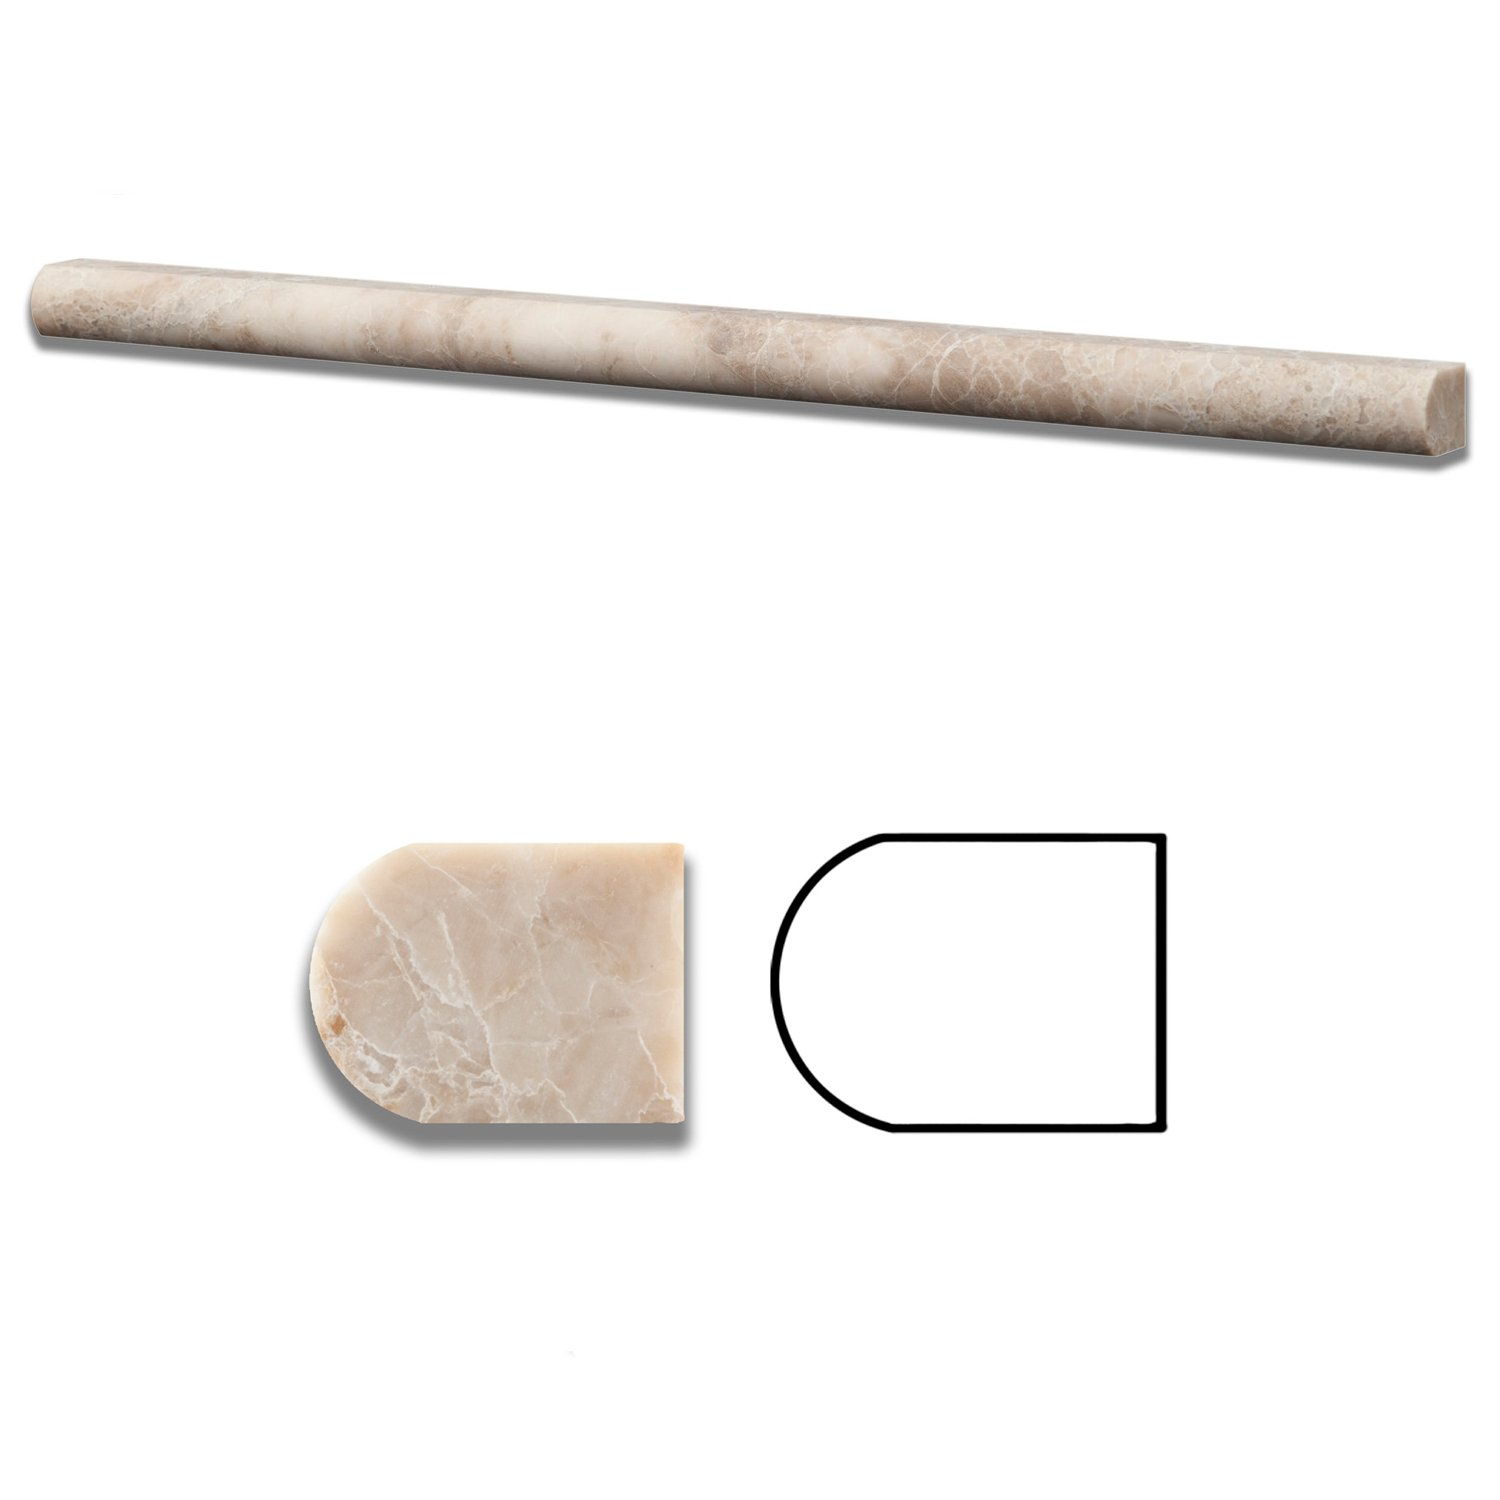 Cappuccino Marble Honed 1/2 X 12 Pencil Liner - Standard Quality - BOX of 15 PCS